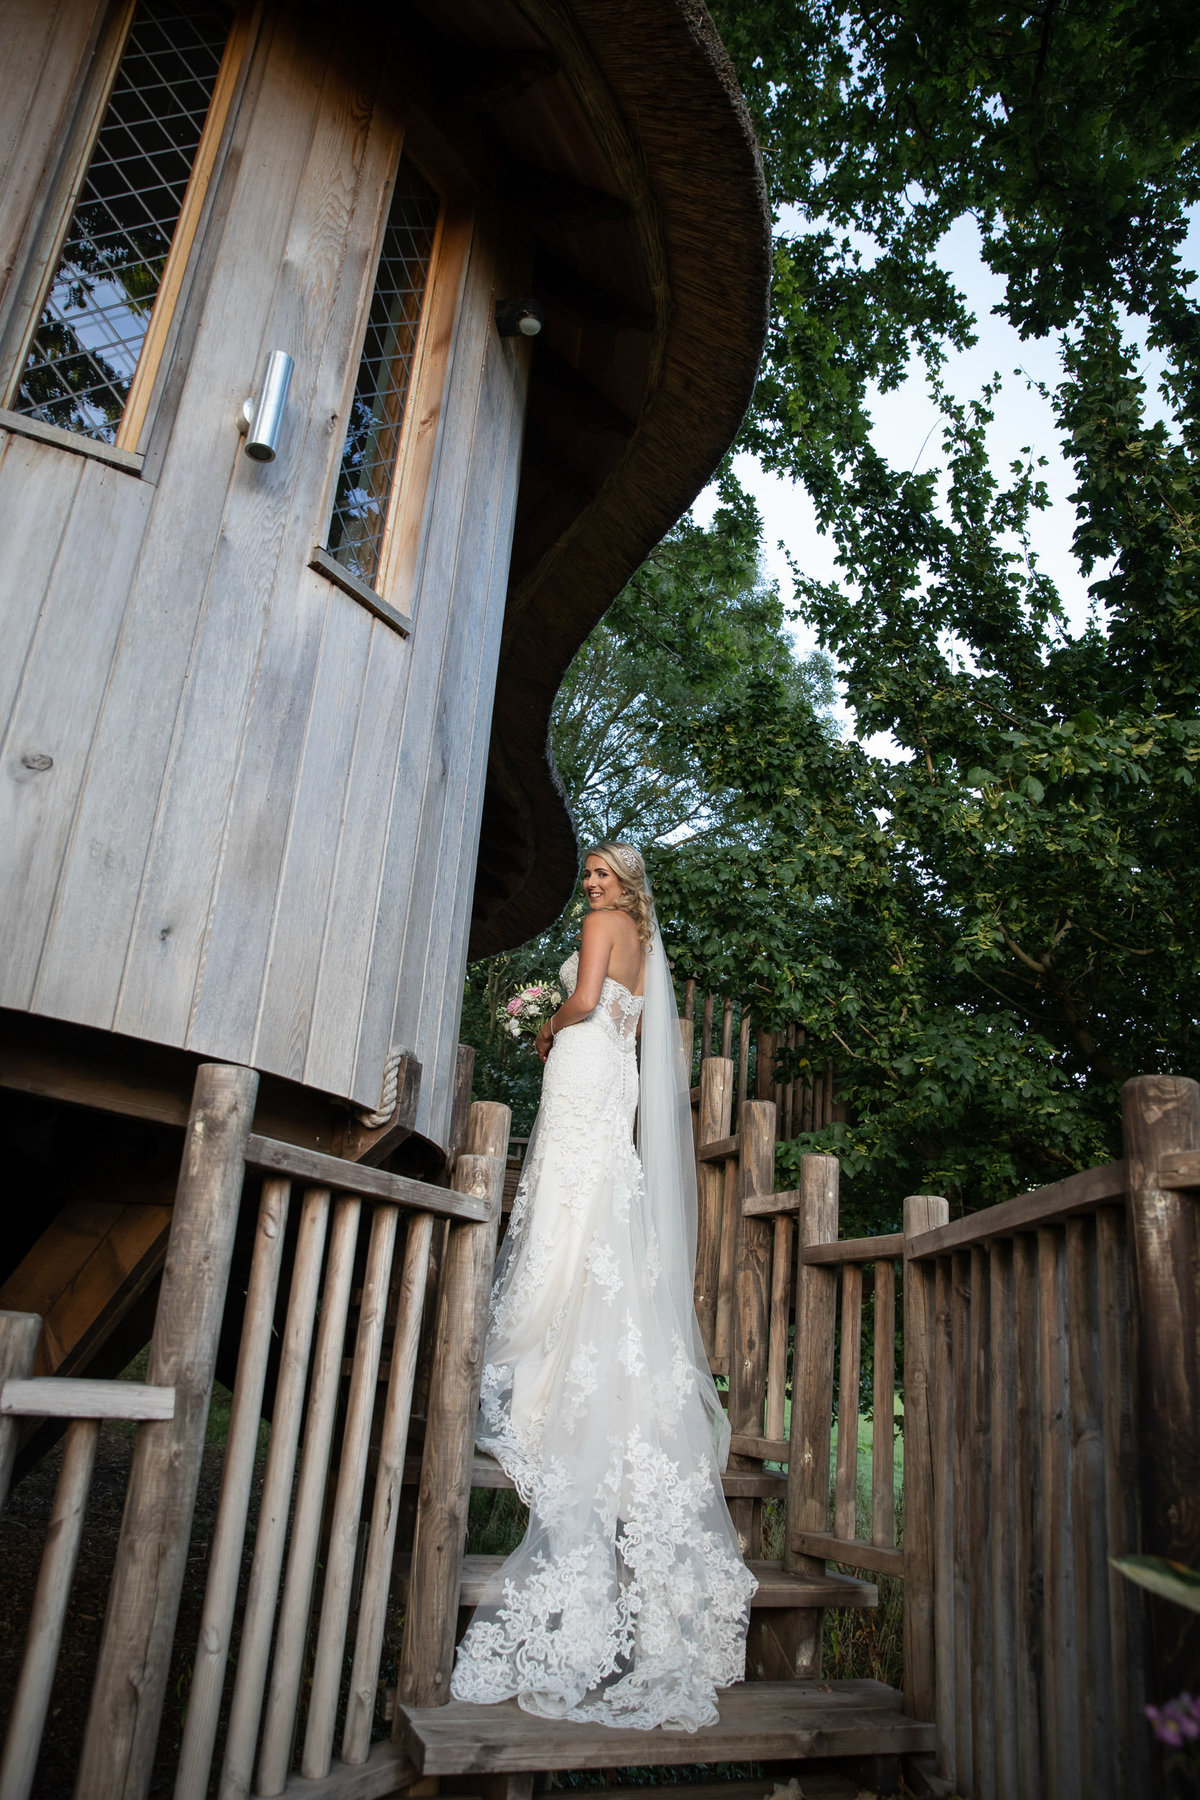 Bride at Treehouse at Deer Park Country House Hotel Wedding in Devon_